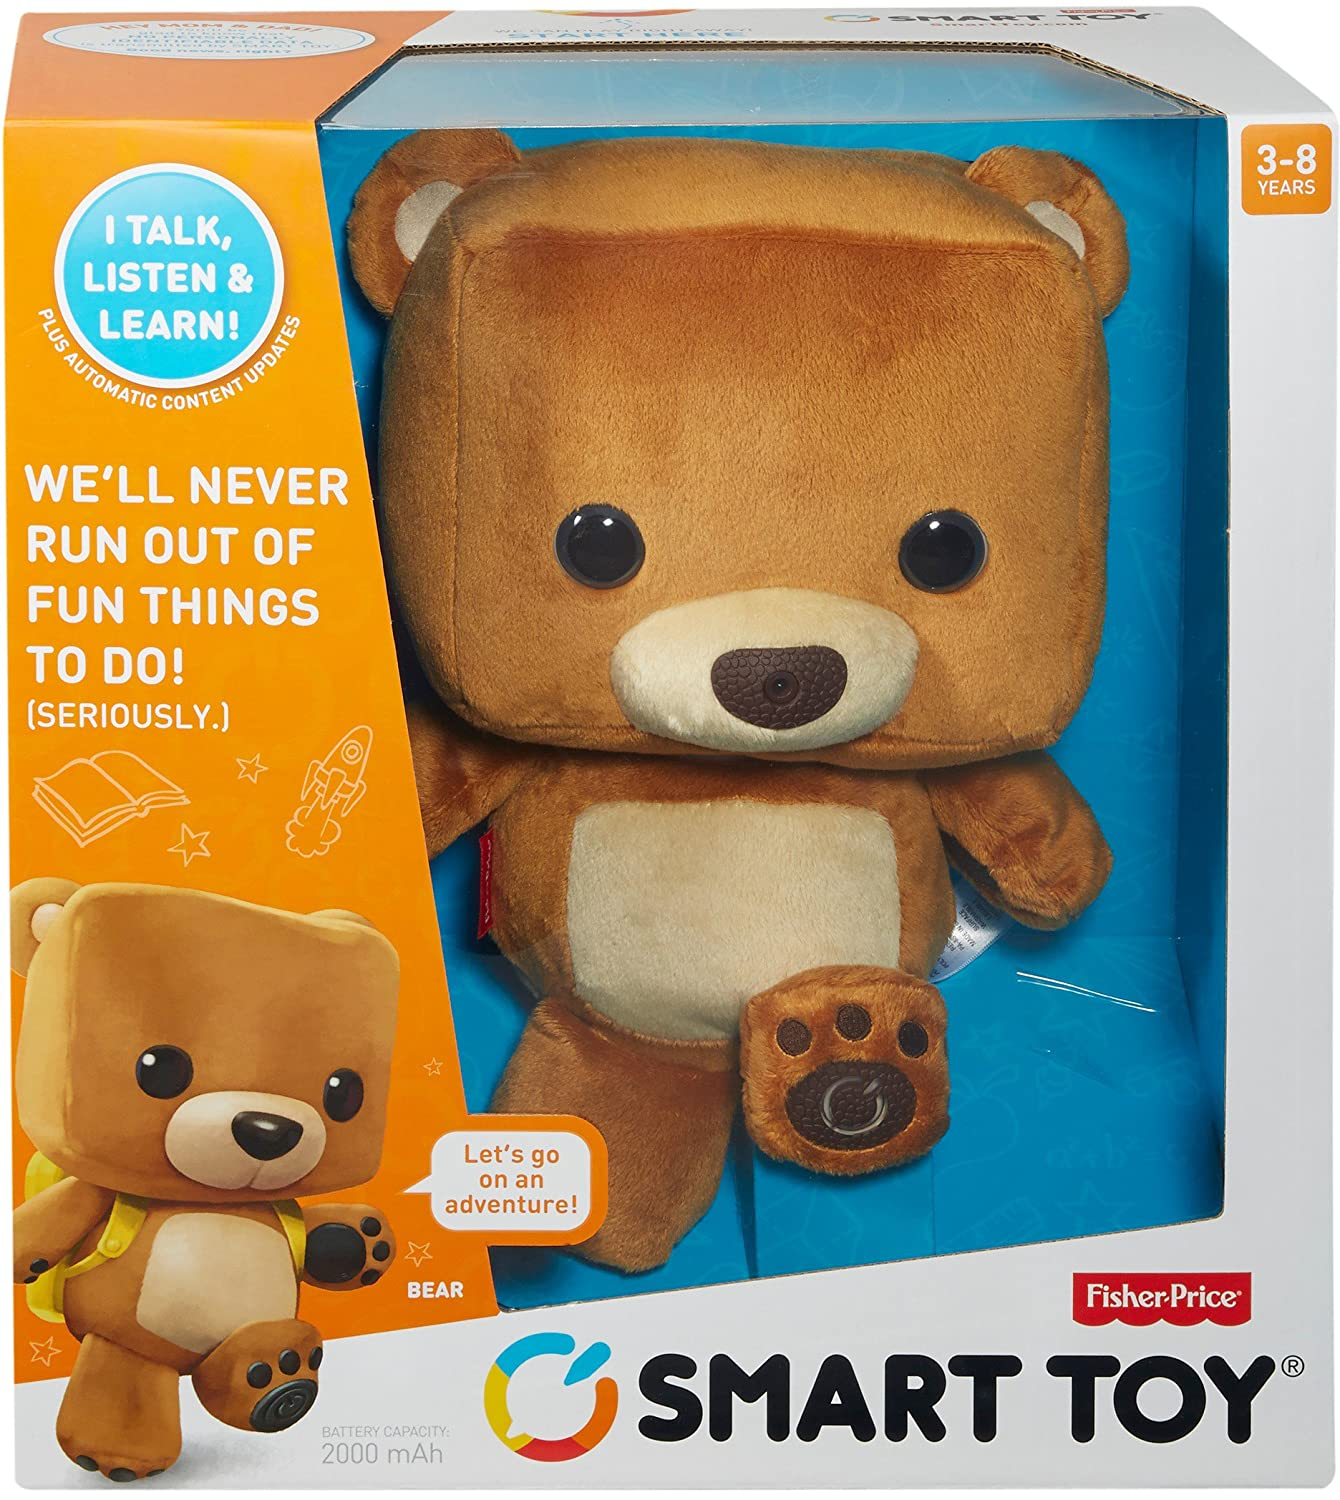 Fisher Price Smart Toy Bear Amazon Toys & Games